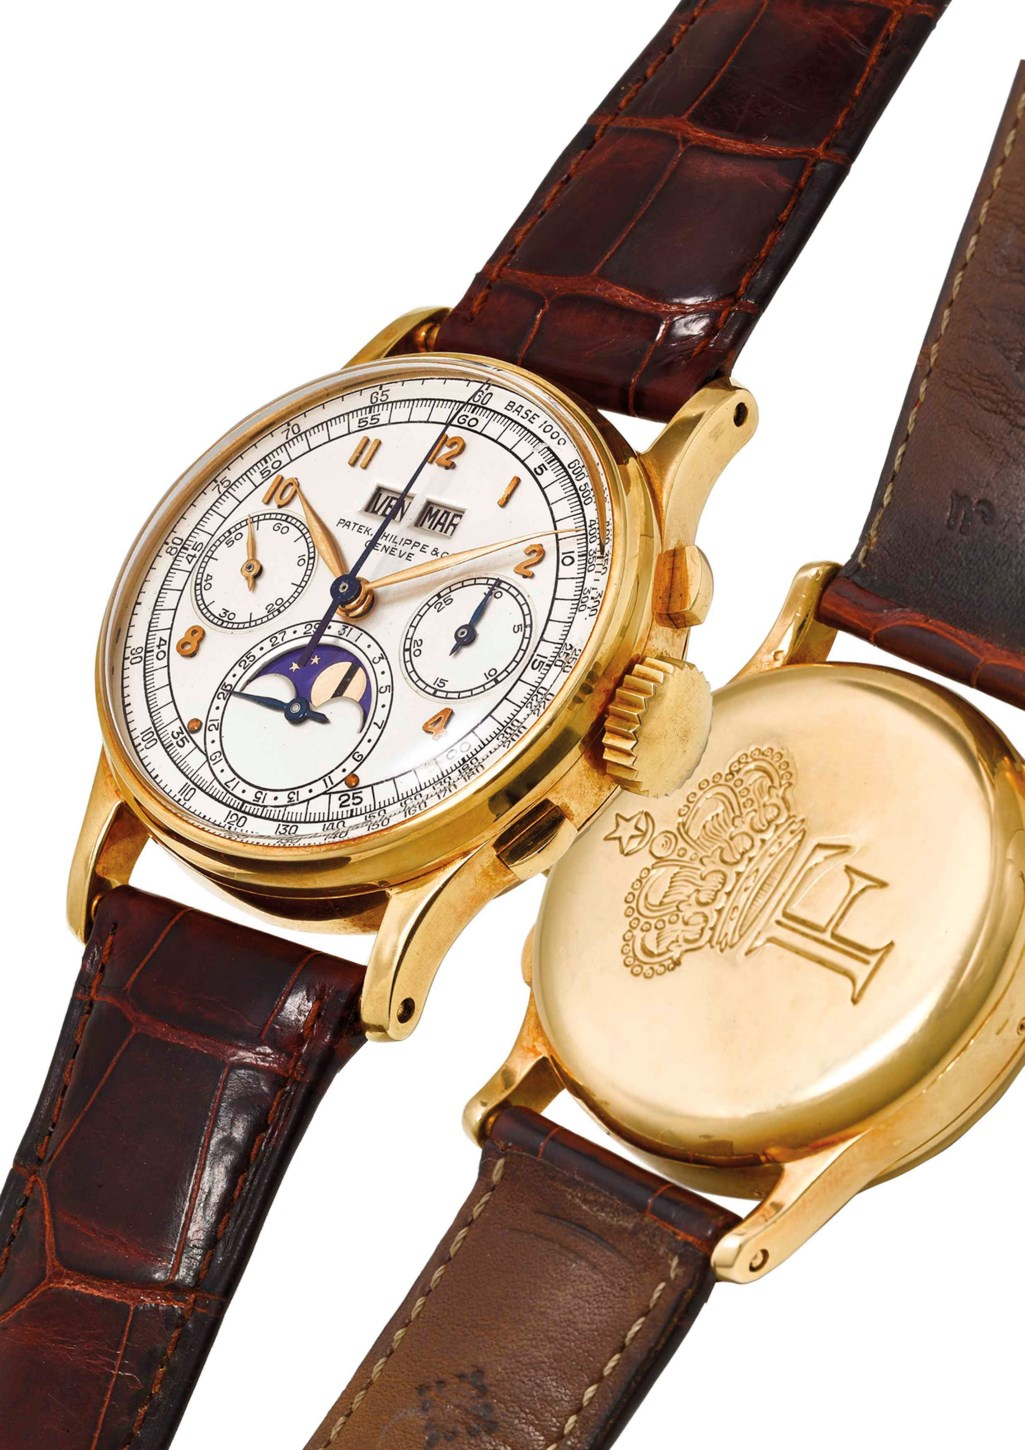 PATEK PHILIPPE. AN EXTREMELY FINE, RARE AND HISTORICALLY IMPORTANT 18K GOLD PERPETUAL CALENDAR CHRONOGRAPH WRISTWATCH WITH MOON PHASES